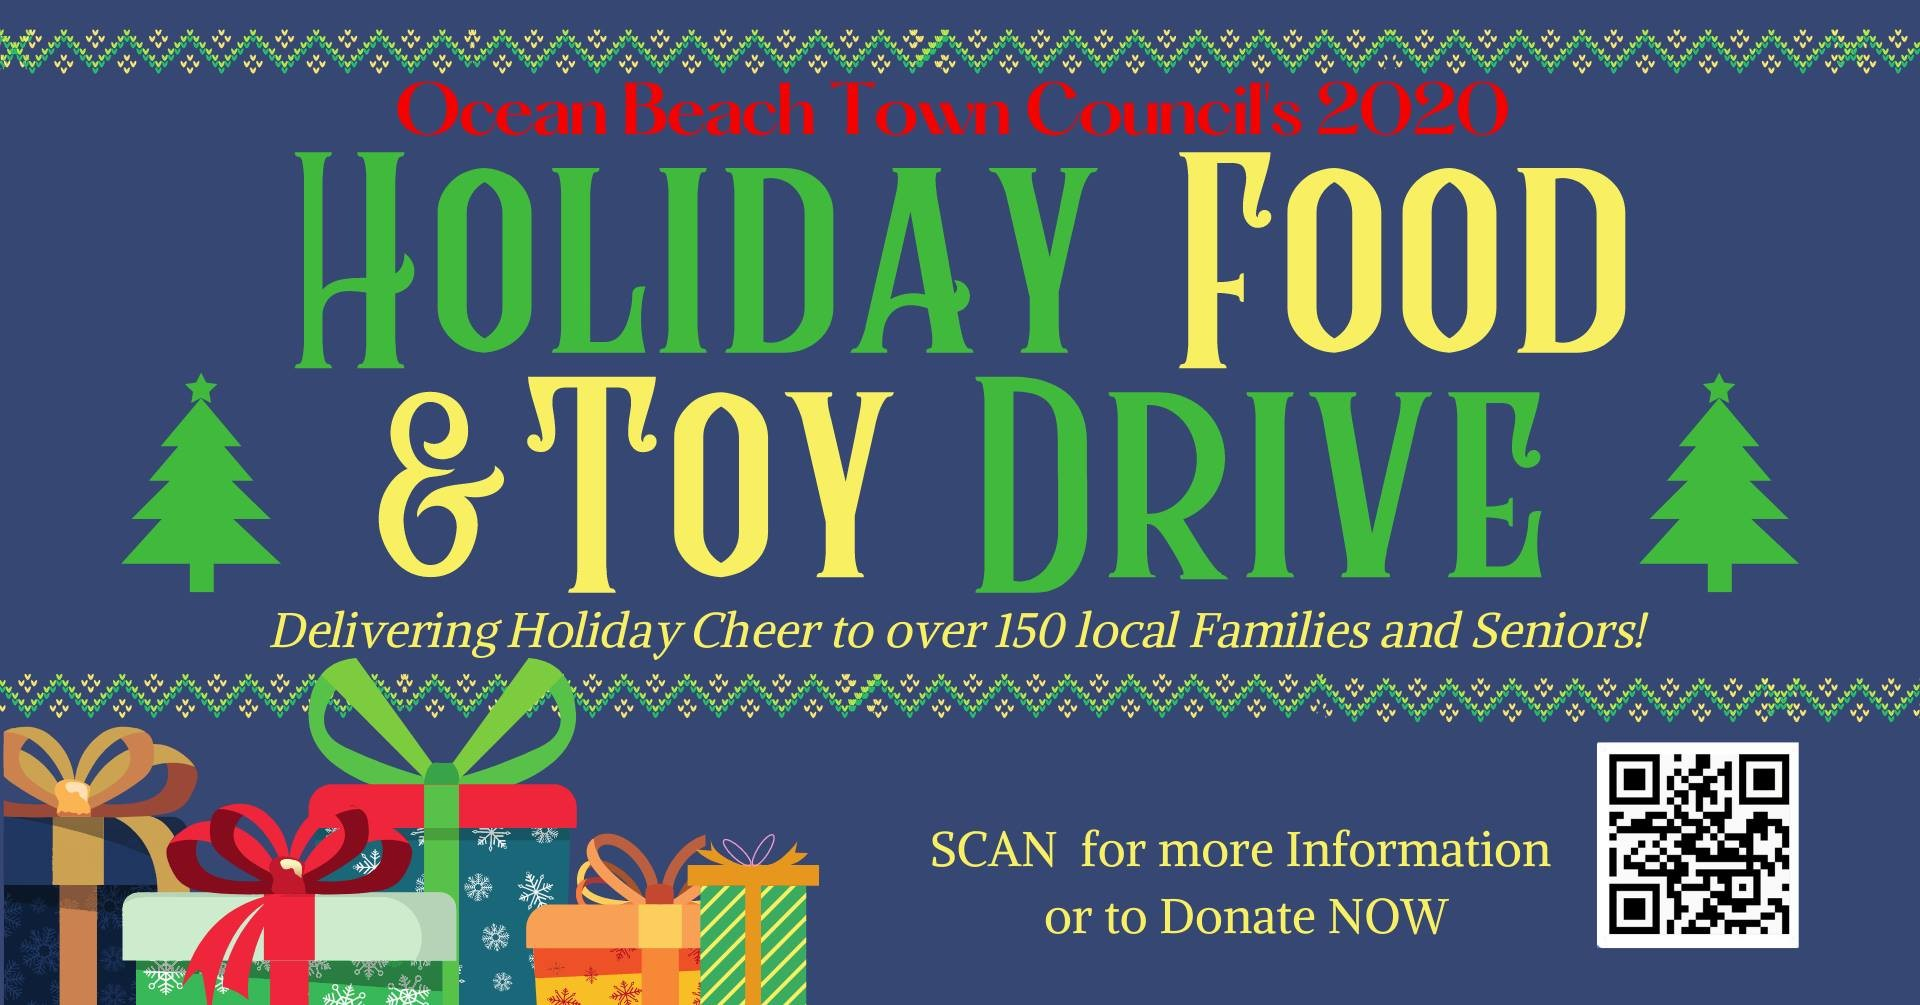 Ocean Beach Town Council Food and Toy Drive GoFundMe